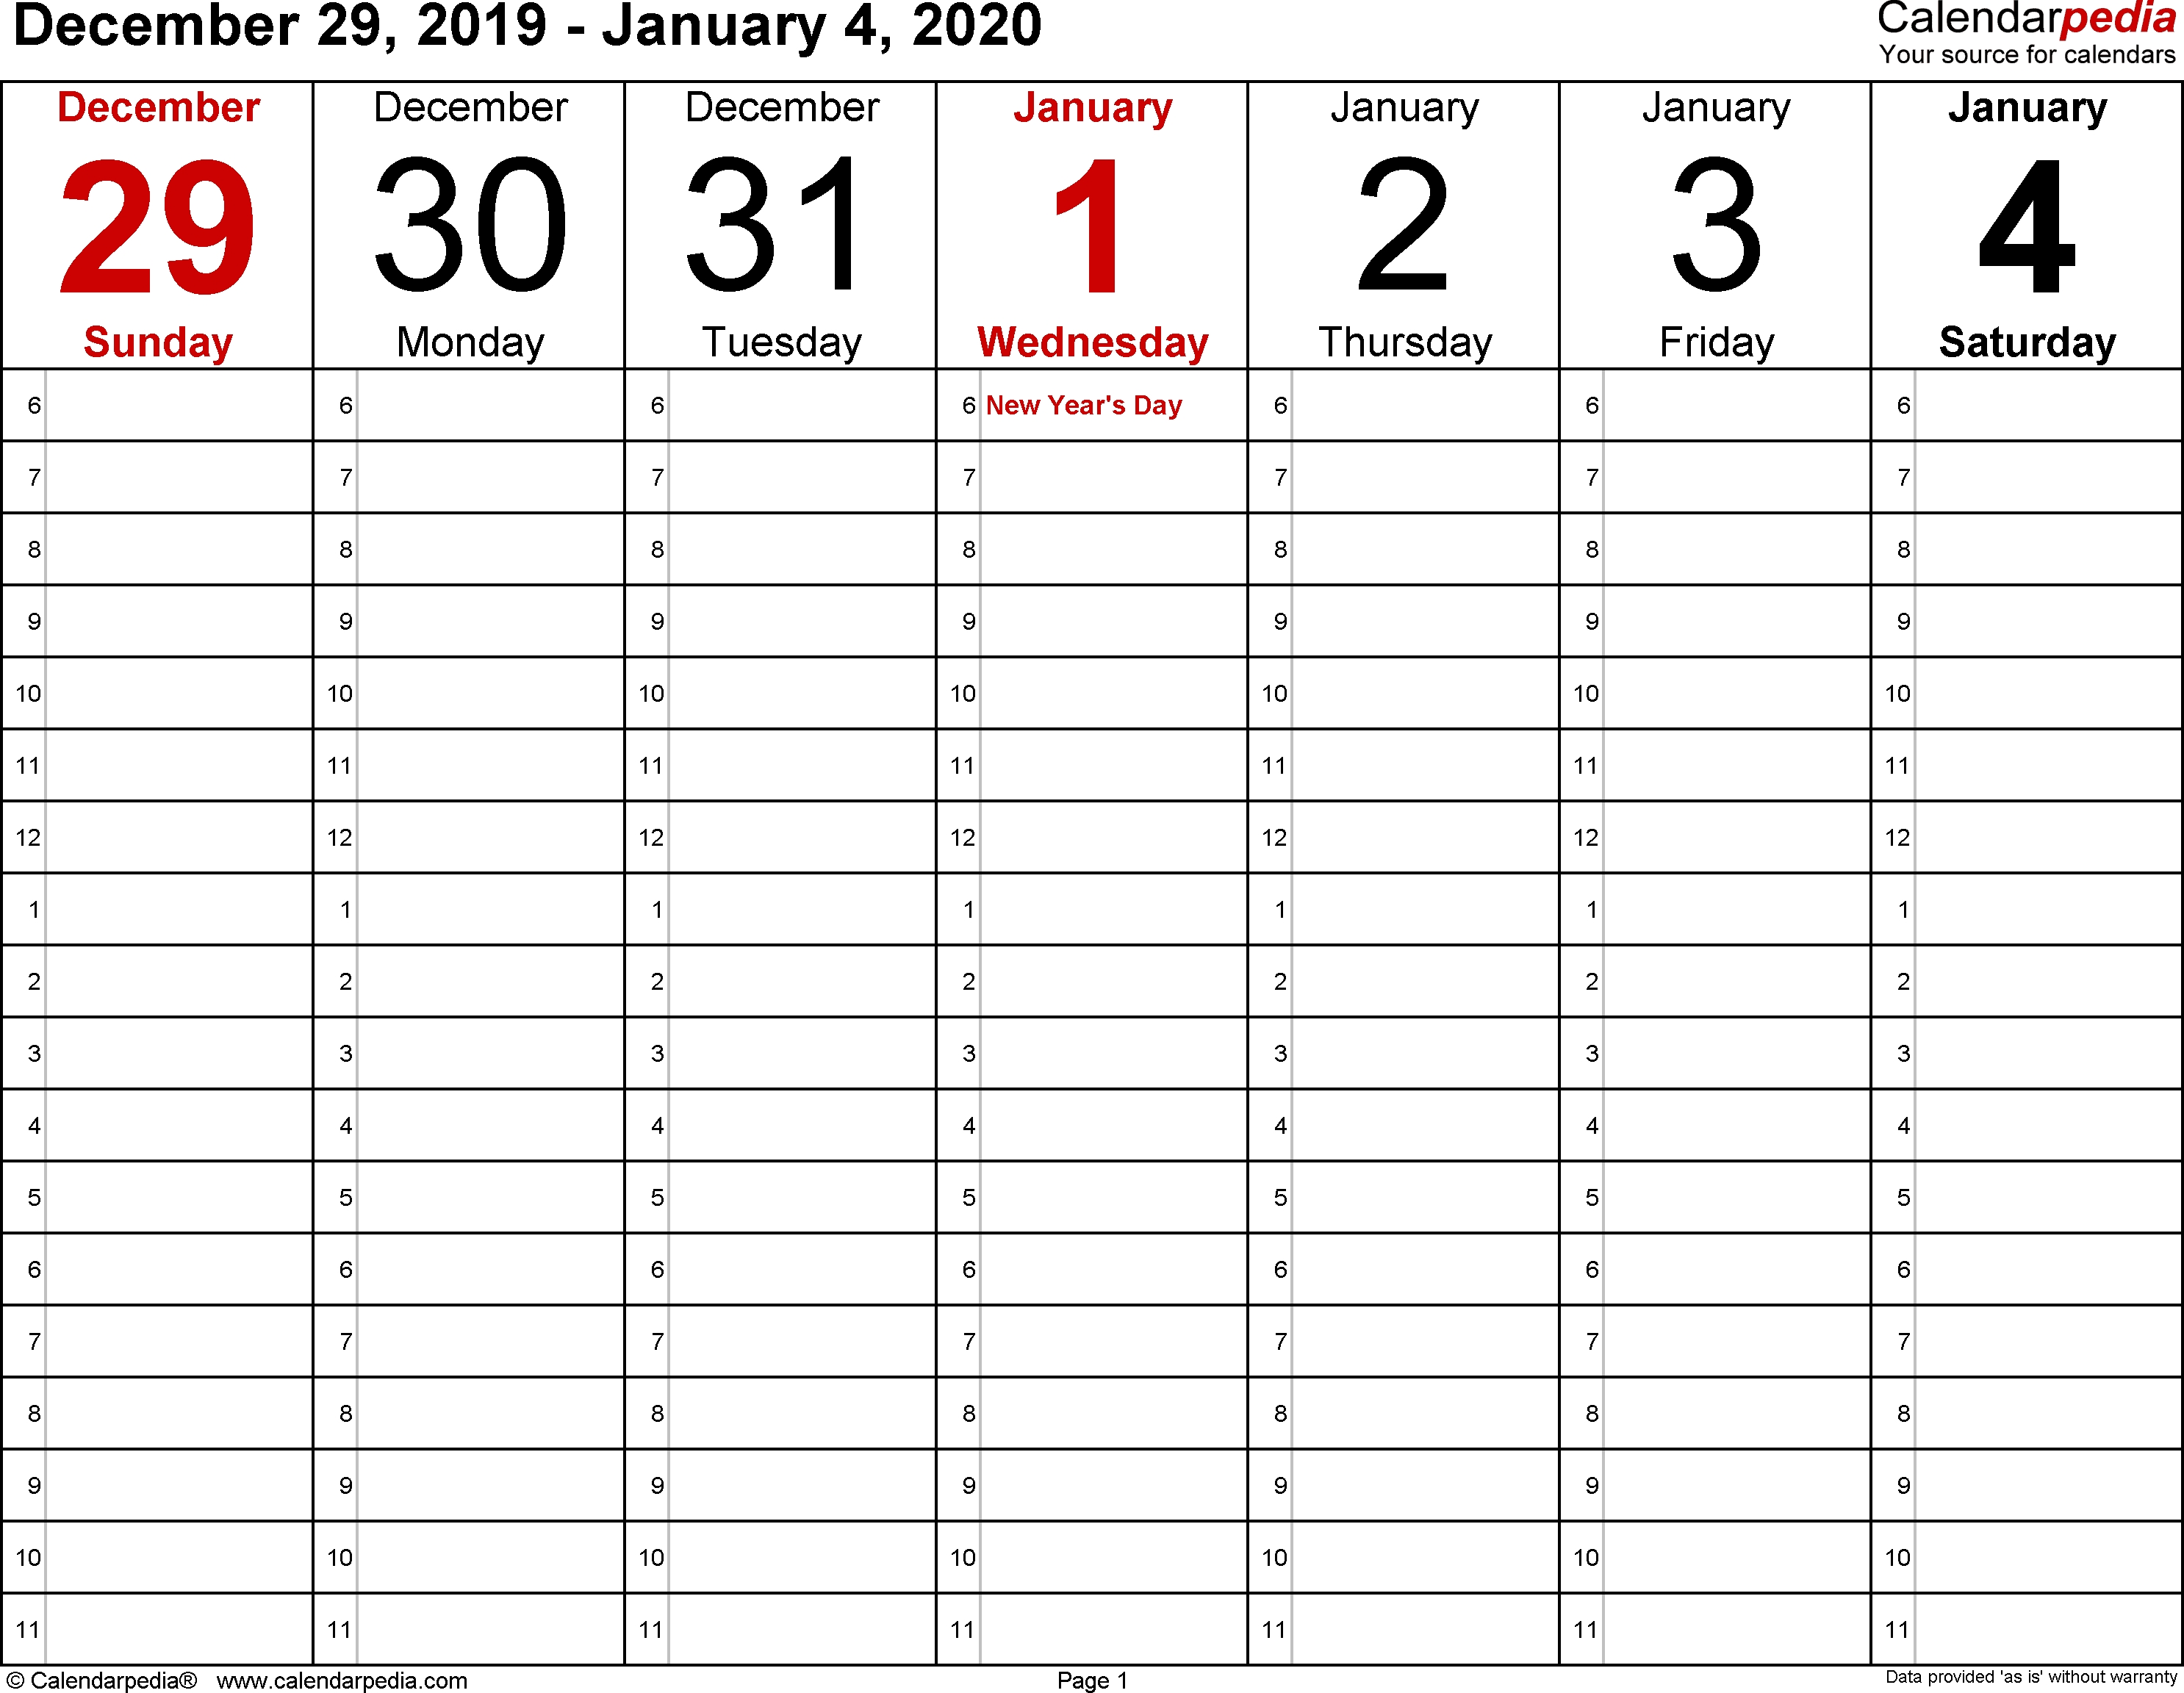 Weekly Calendar 2020 For Word - 12 Free Printable Templates pertaining to 8.5 X 11 Calander Filler For 2020